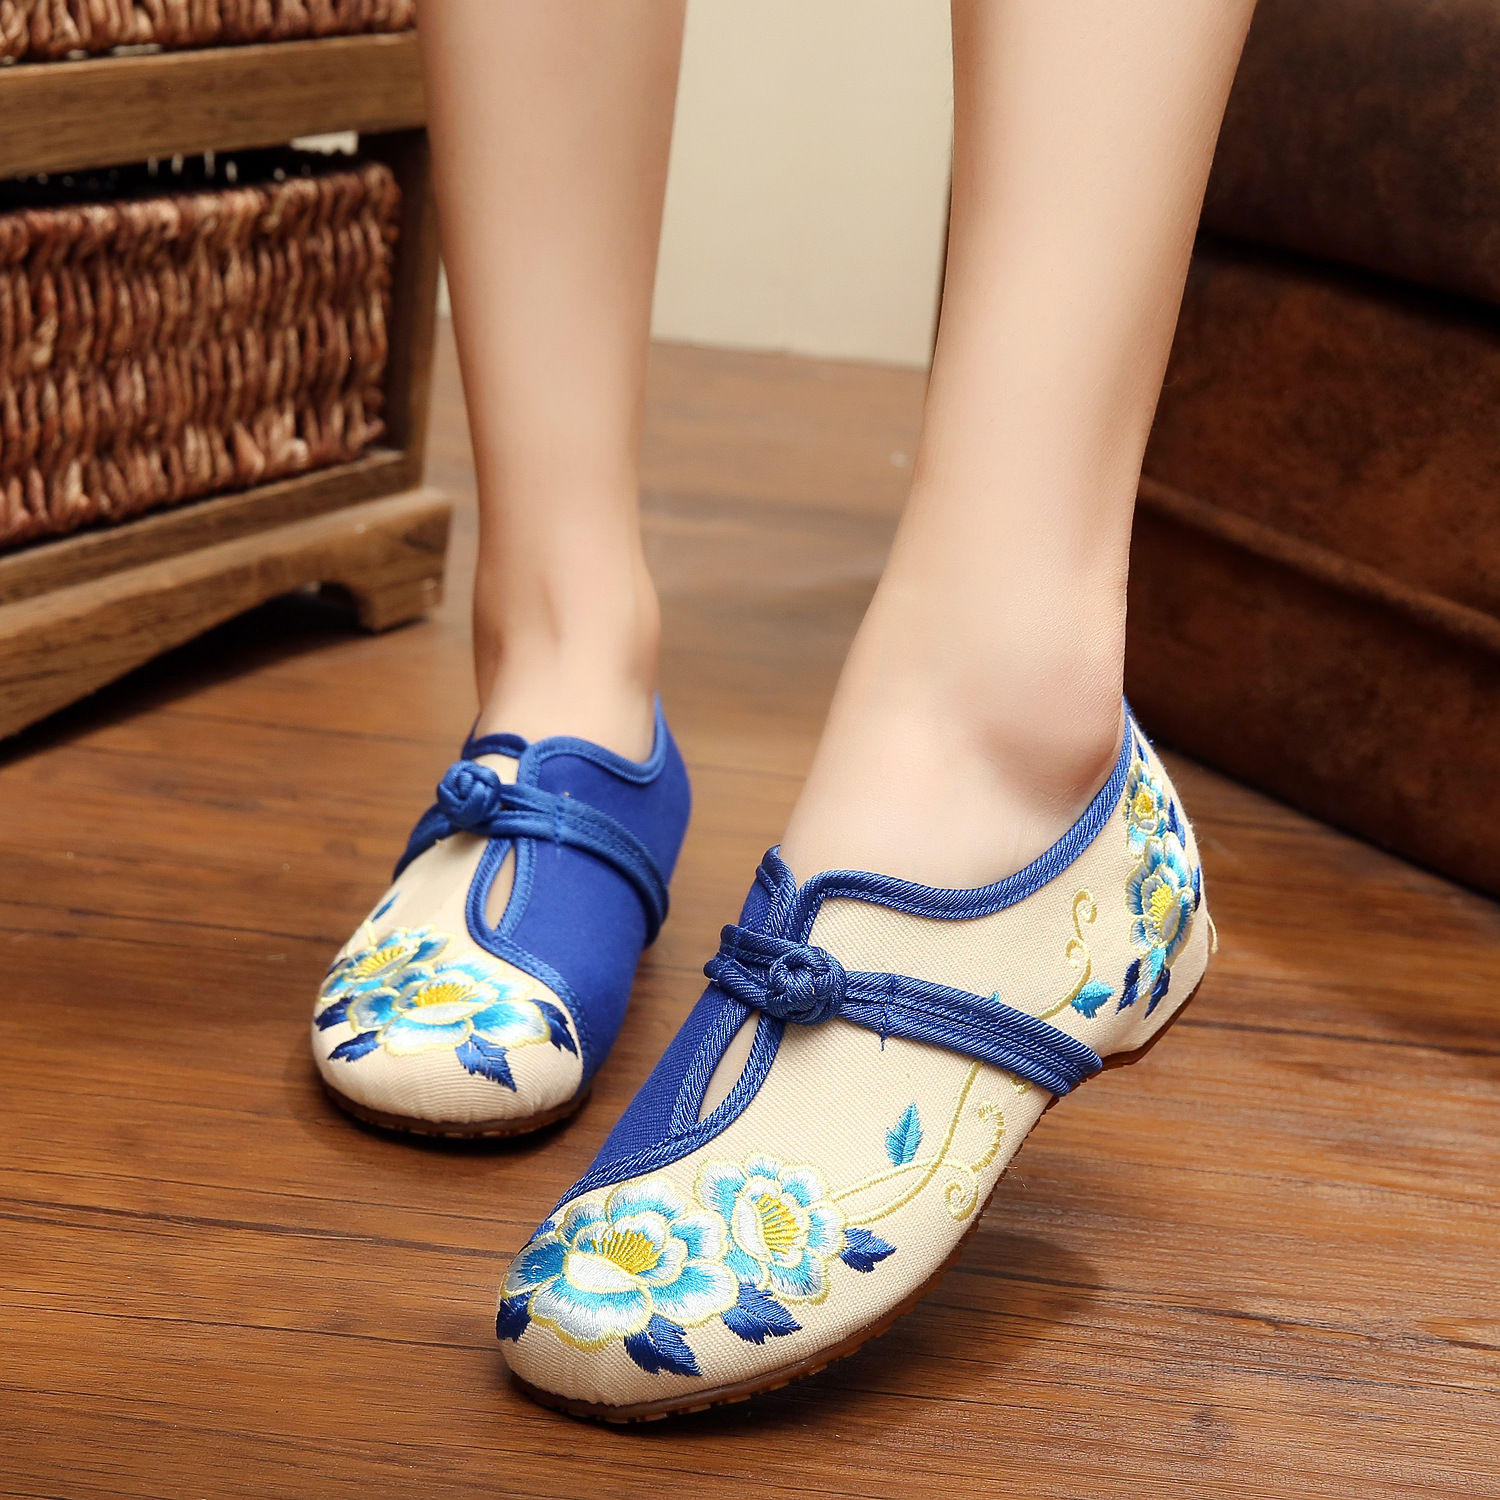 Blue + white Big Size 41 Ballerinas Dancing Shoes Women Peacock Embroidery Soft Sole Casual Shoes Beijing Cloth Walking Flats vintage embroidery women flats chinese floral canvas embroidered shoes national old beijing cloth single dance soft flats